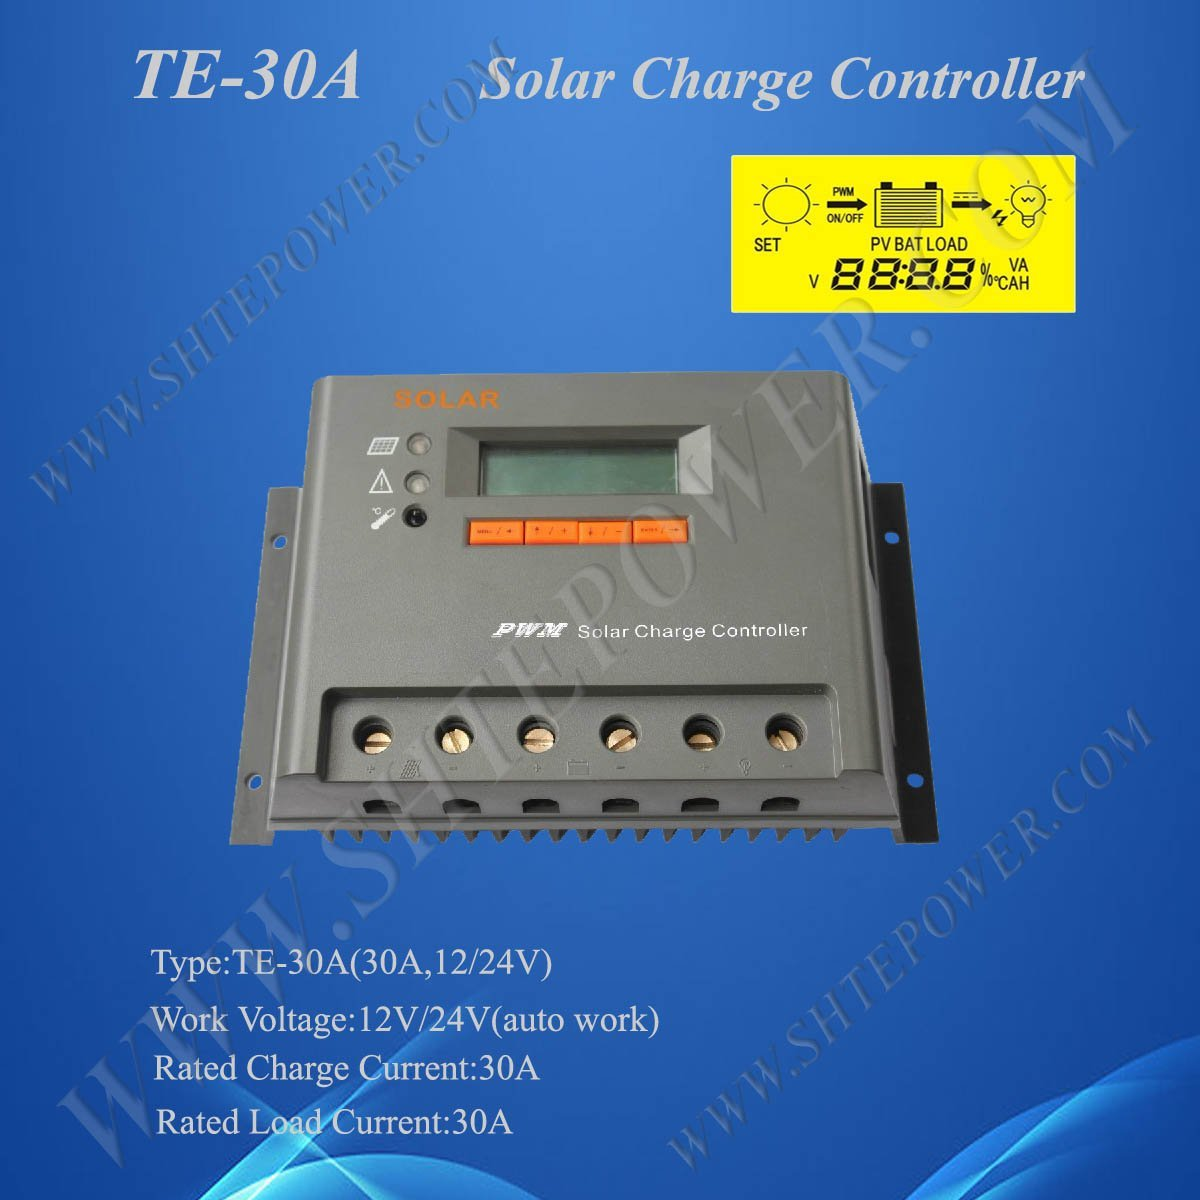 Solar Charge Regulator 12v/24v auto work 30A for Home Solar Panel  System 20a 12 24v solar regulator with remote meter for duo battery charging